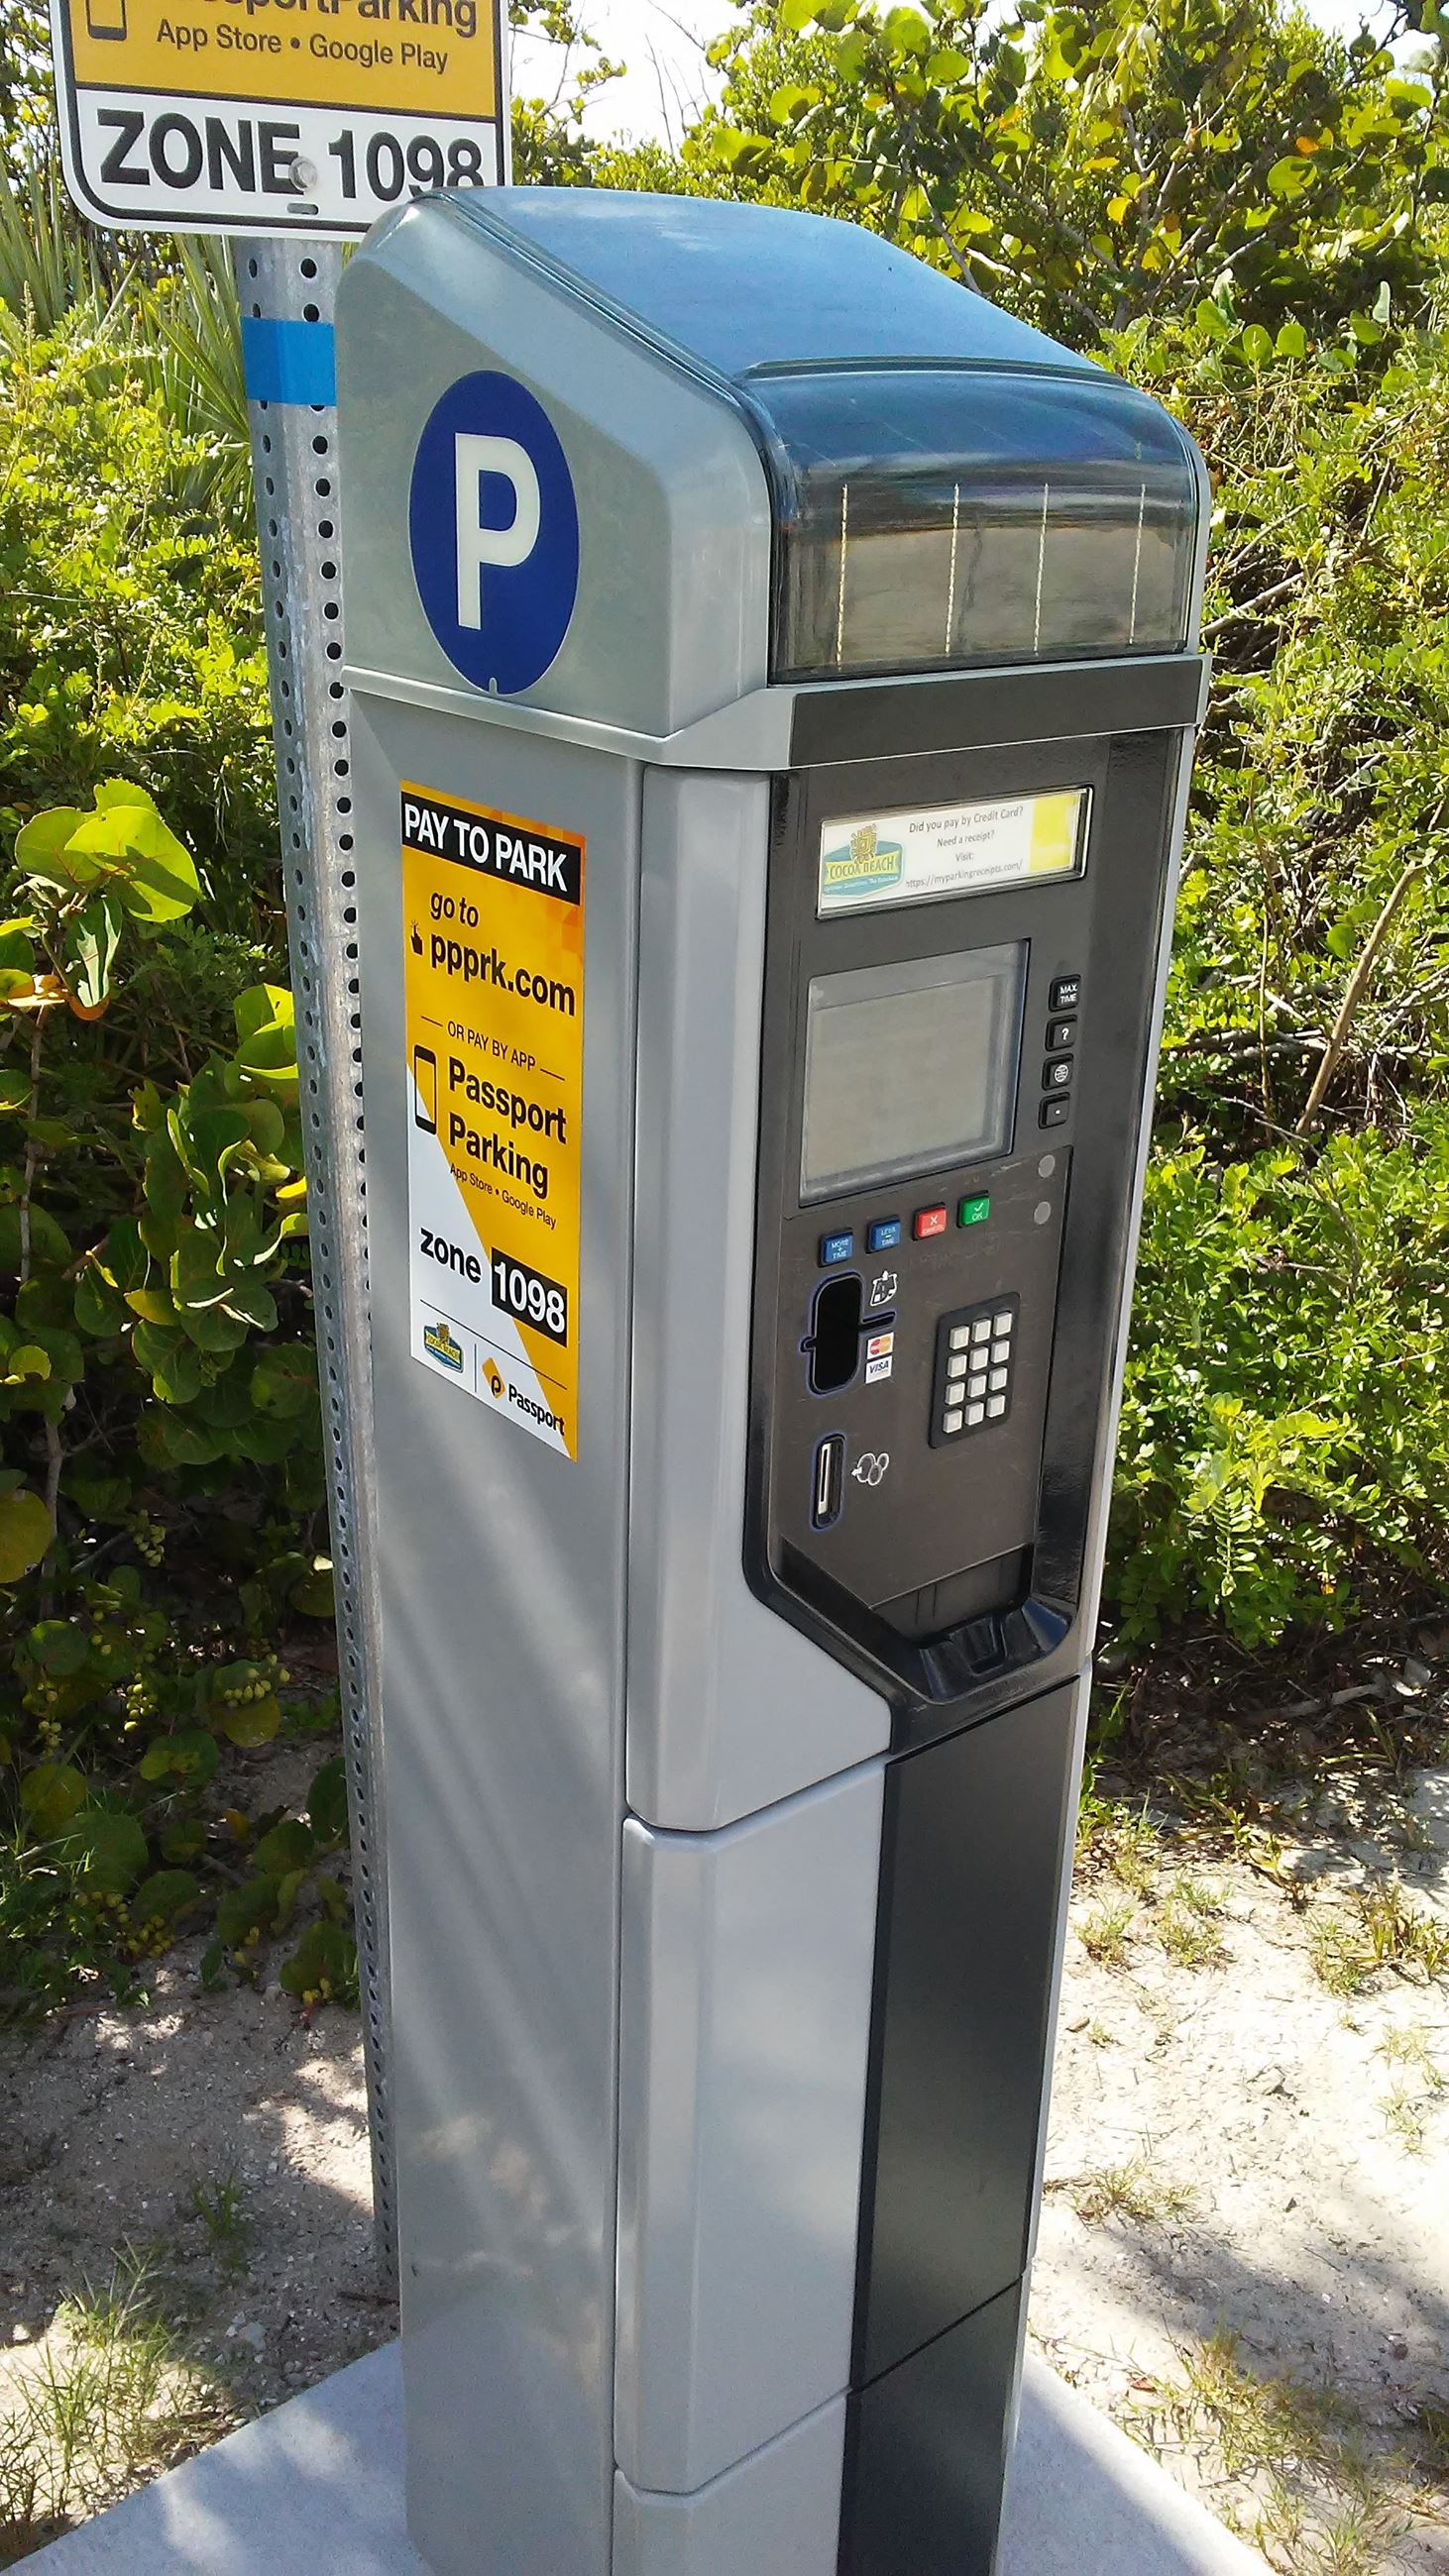 Parking and Payment Kiosk